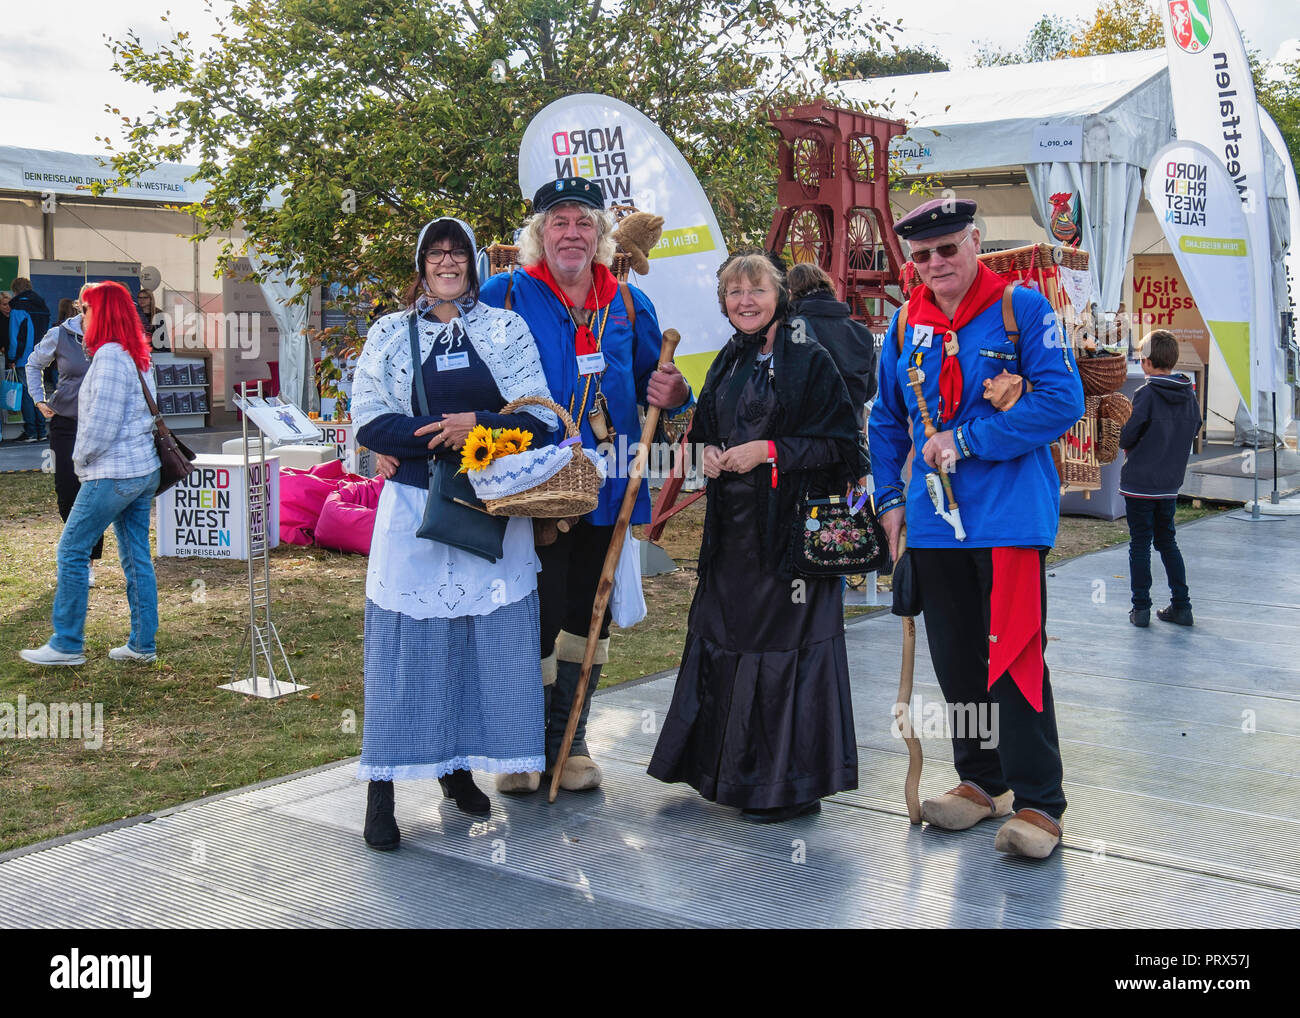 Germany, Berlin, Mitte, 1-3 October 2018. People in Colourful costumes at State of North Rhine Westphalia display on German Unity day.                 - Stock Image